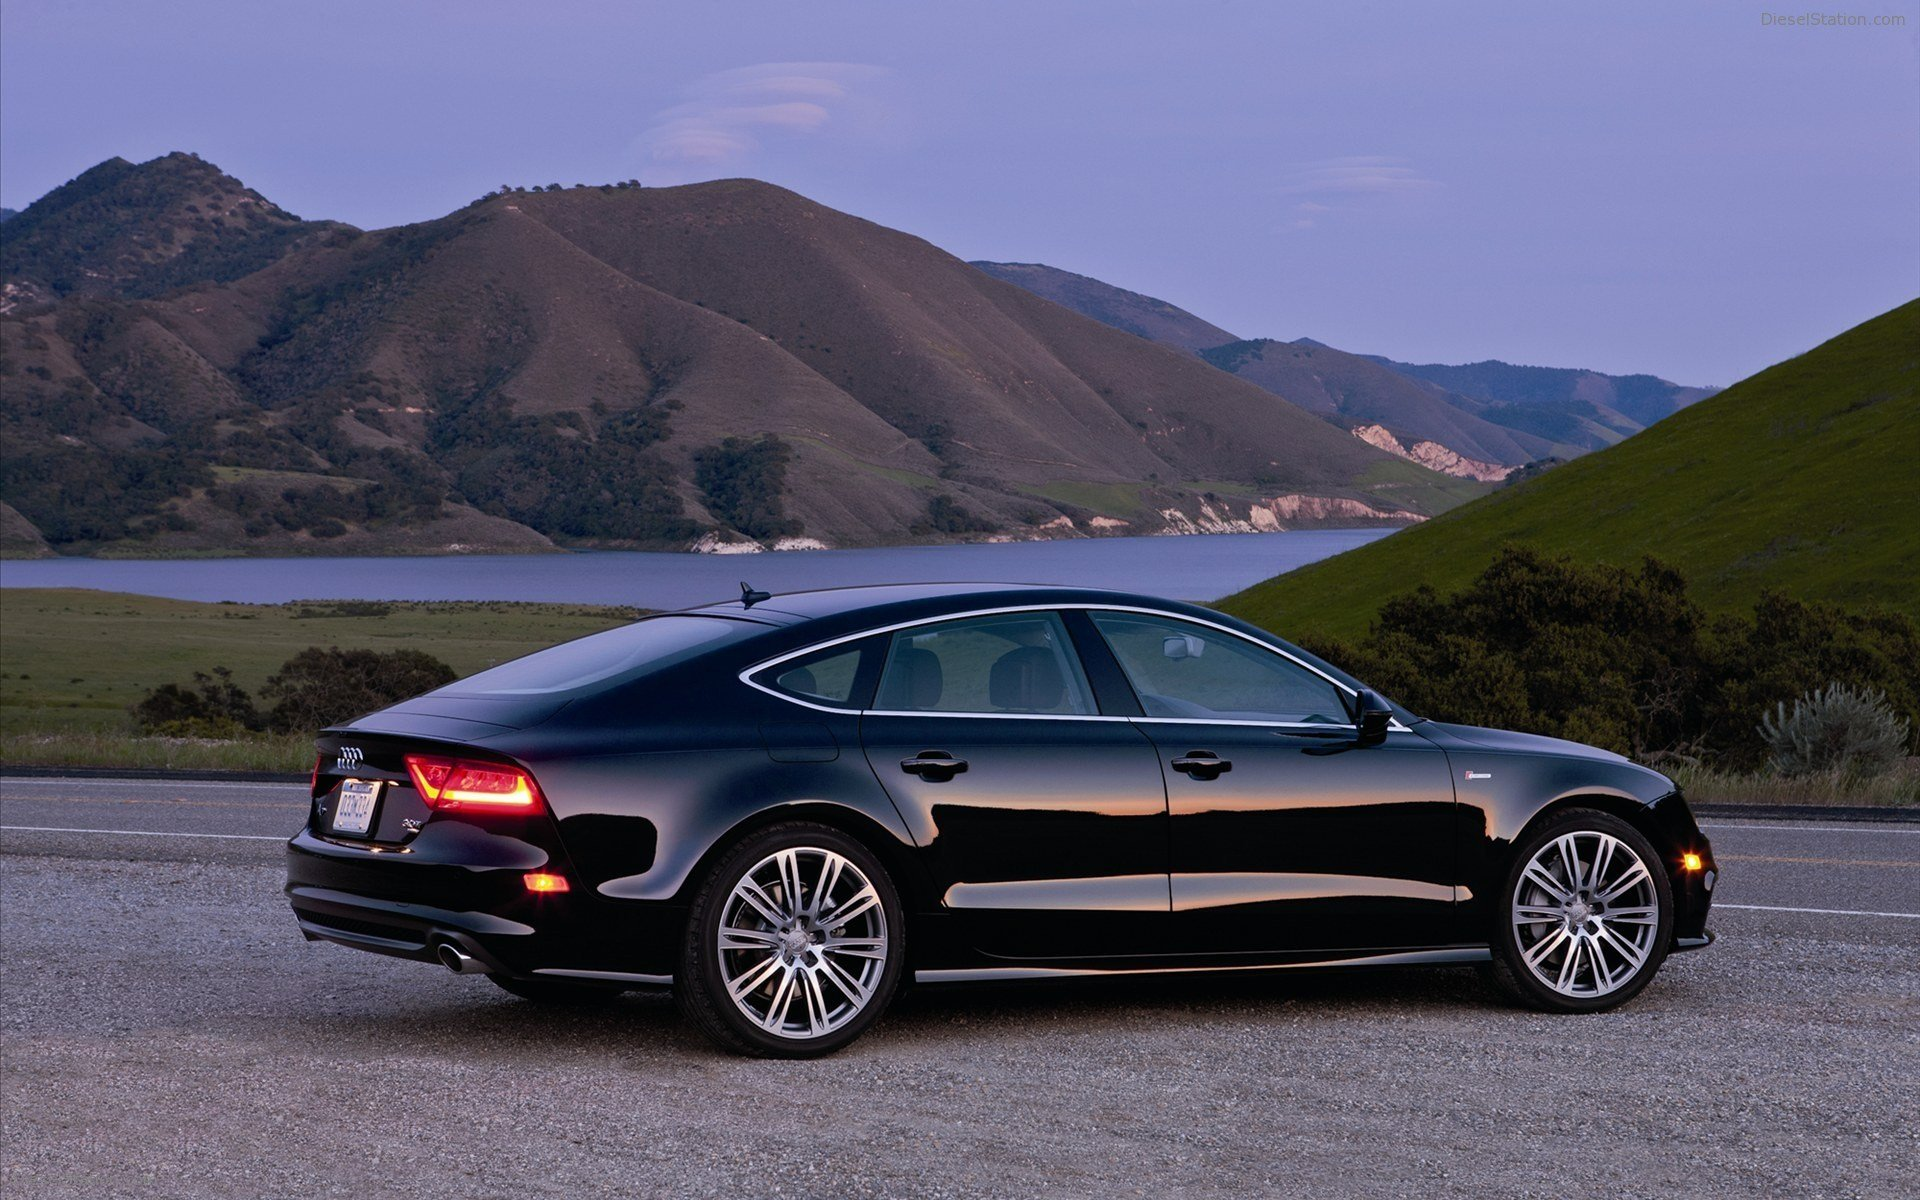 Latest Audi A7 2012 Widescreen Exotic Car Image 22 Of 56 Free Download